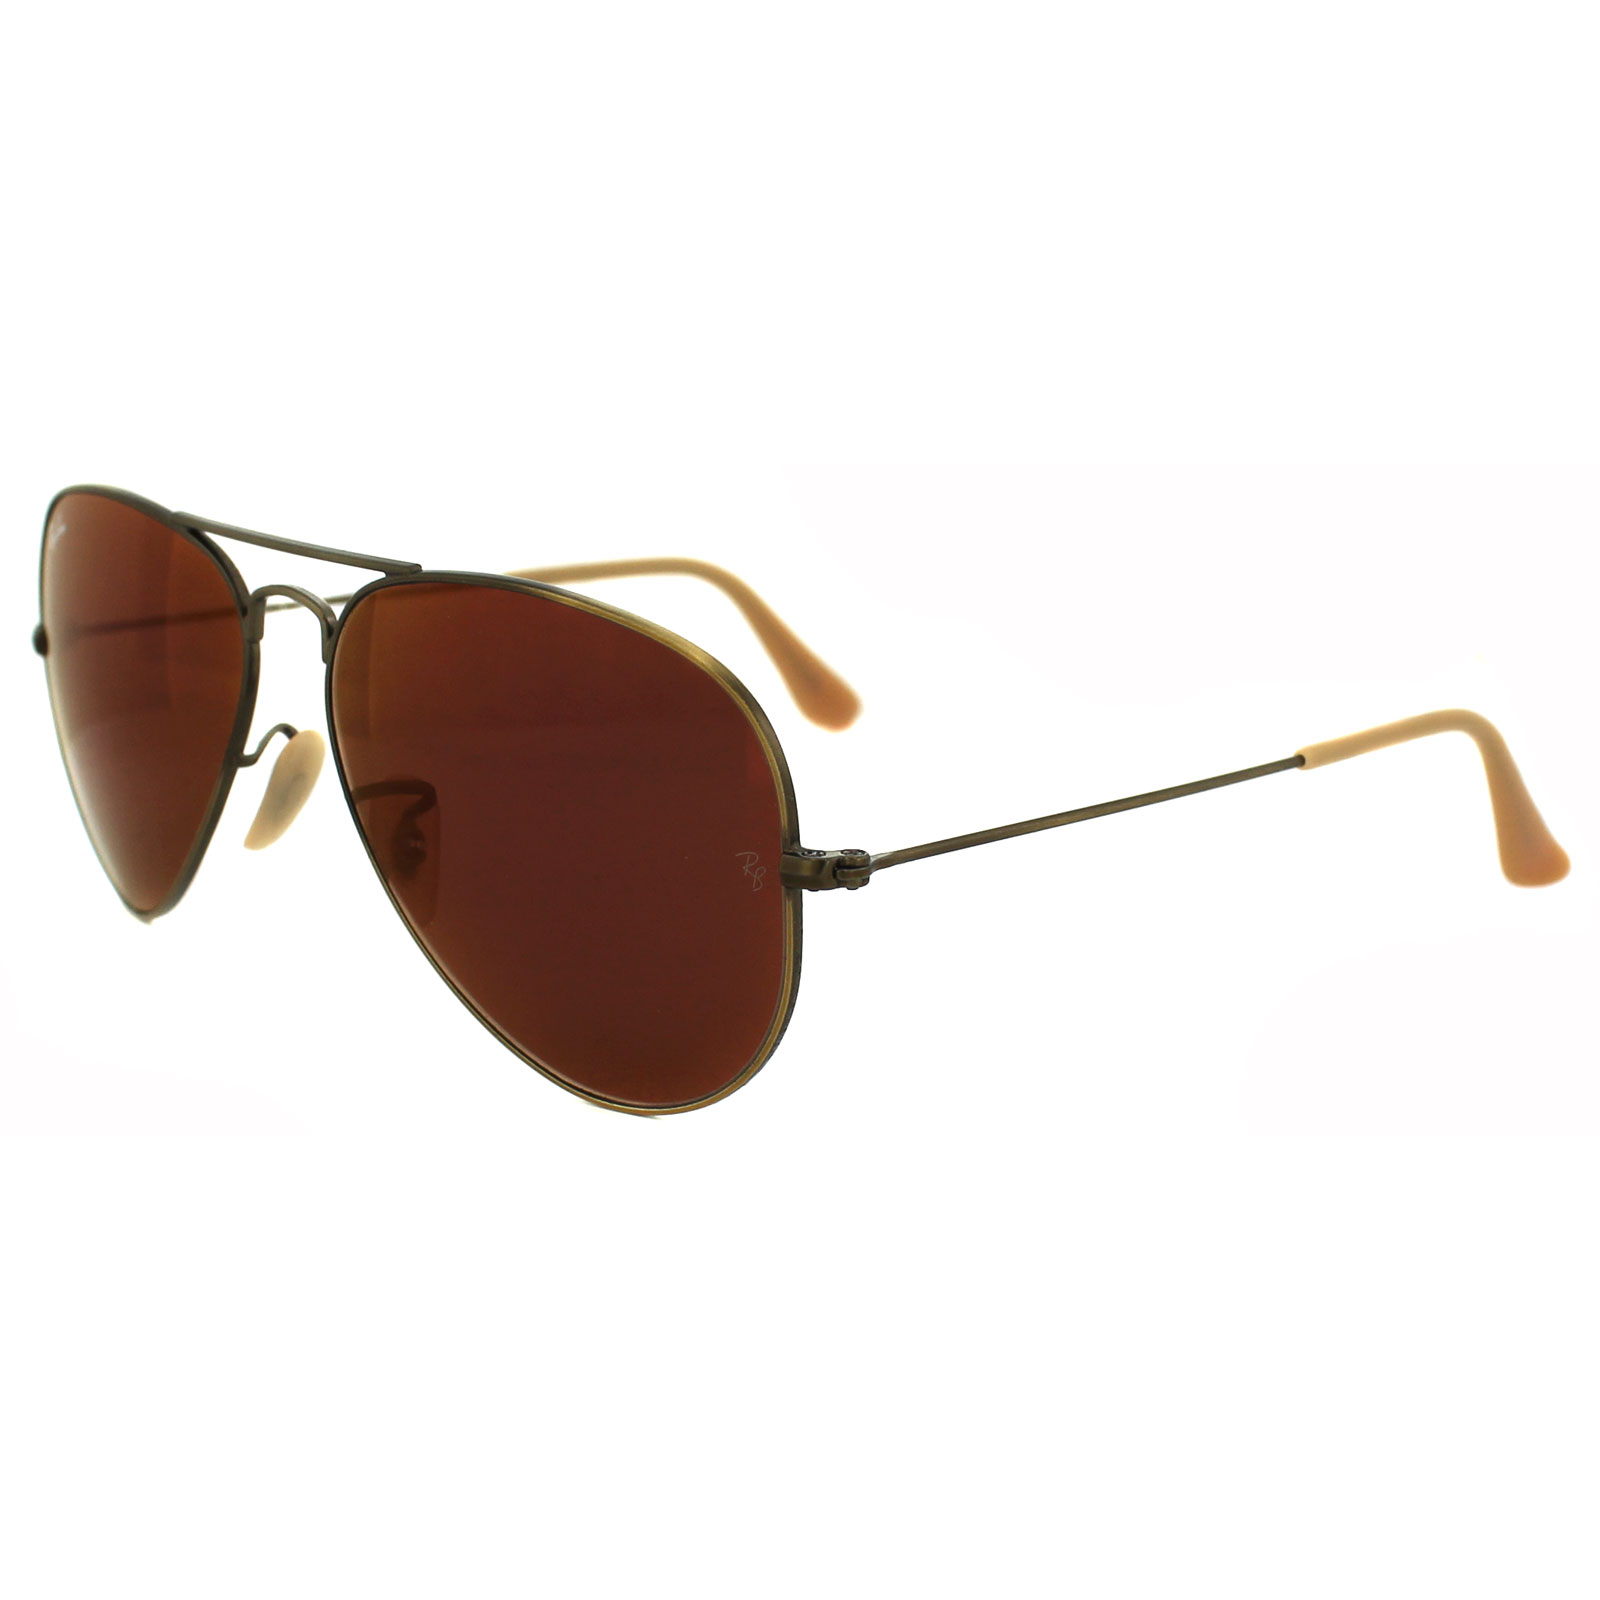 Details about Ray Ban Aviator 3025 003 32 58